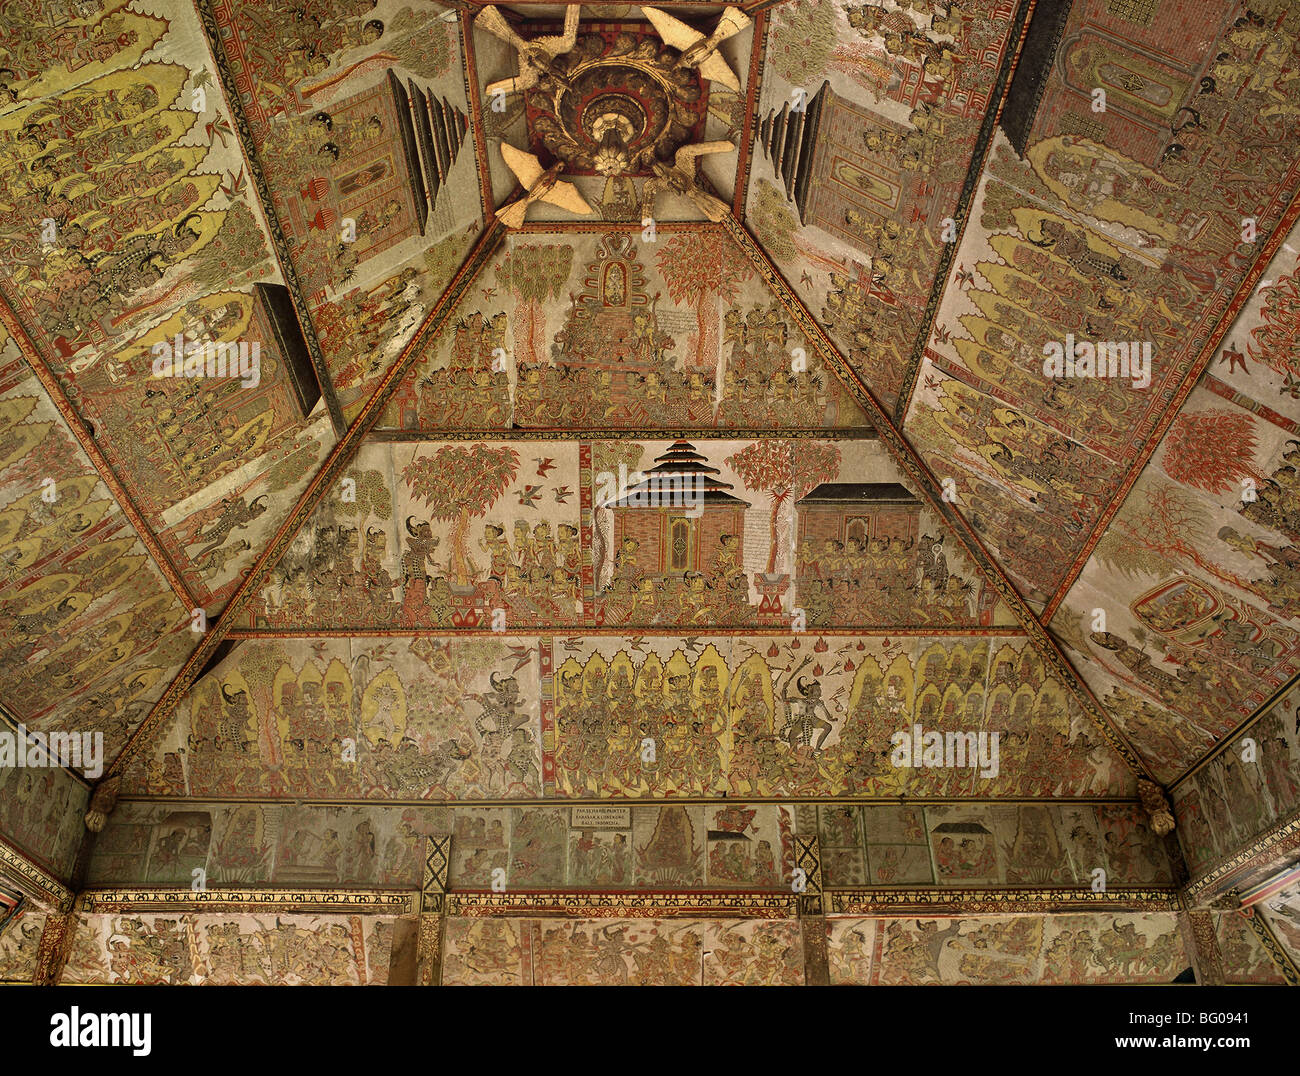 Ceiling of Court of Justice, Klungkung, Bali, Indonesia, Southeast Asia, Asia - Stock Image